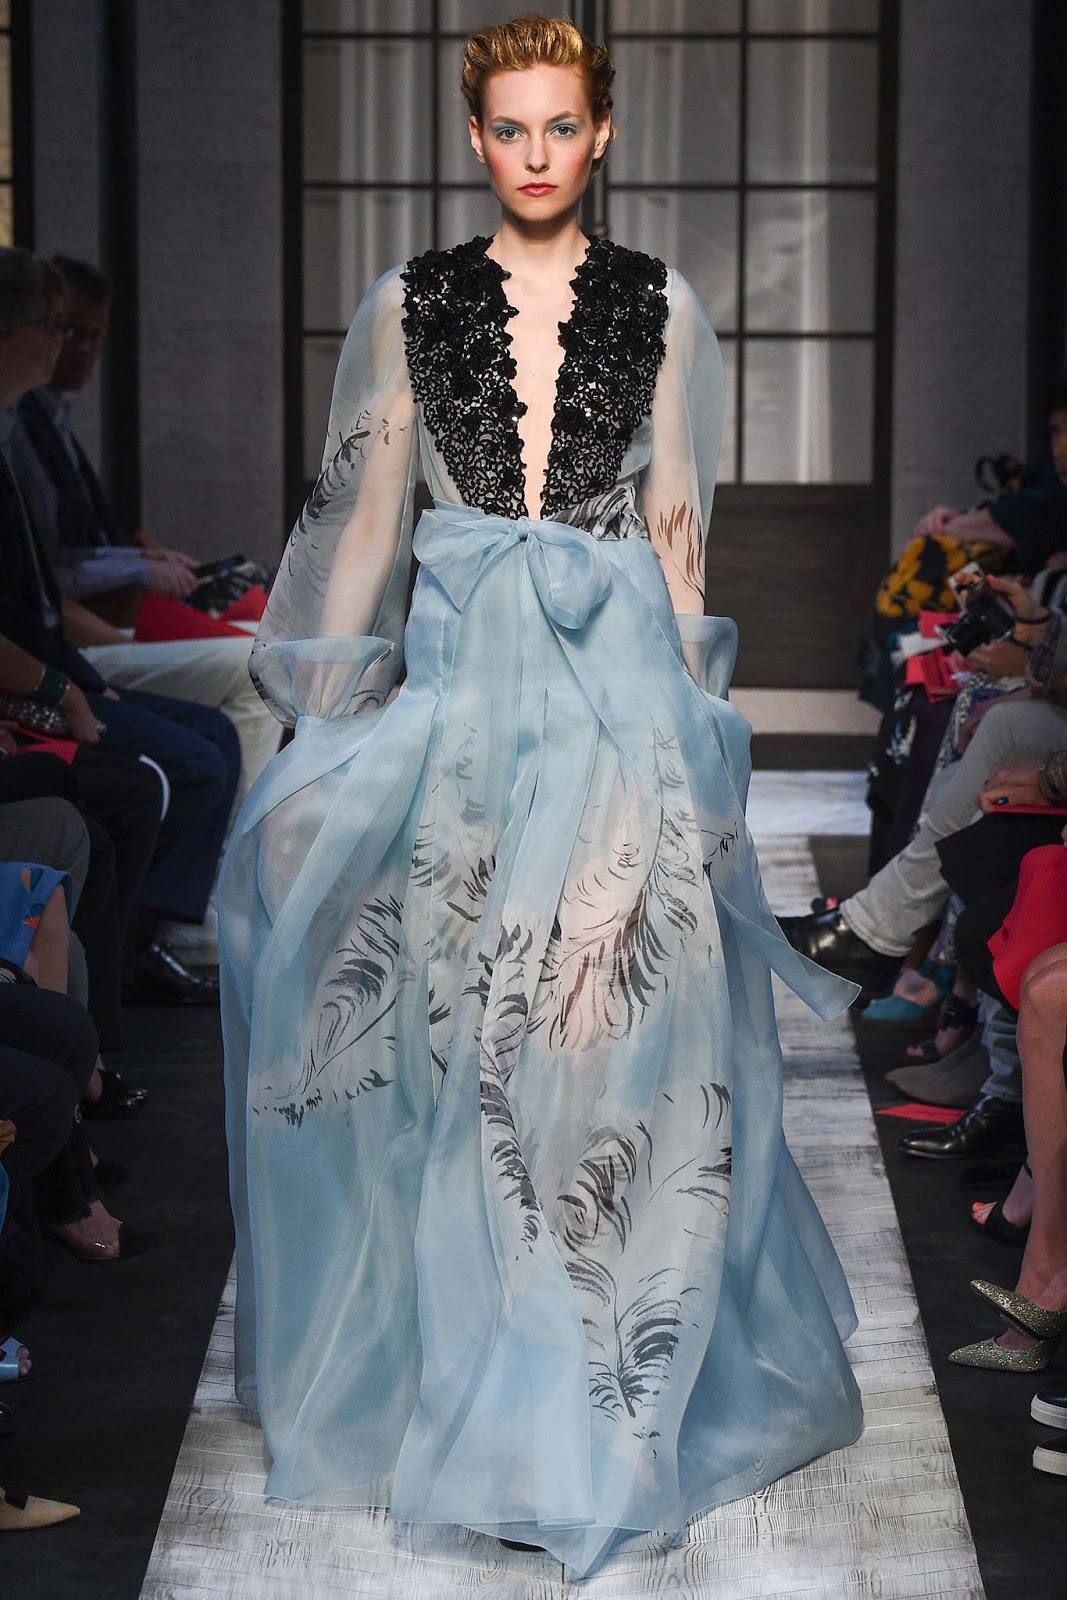 fashion runway schiaparelli fall 2015 haute couture